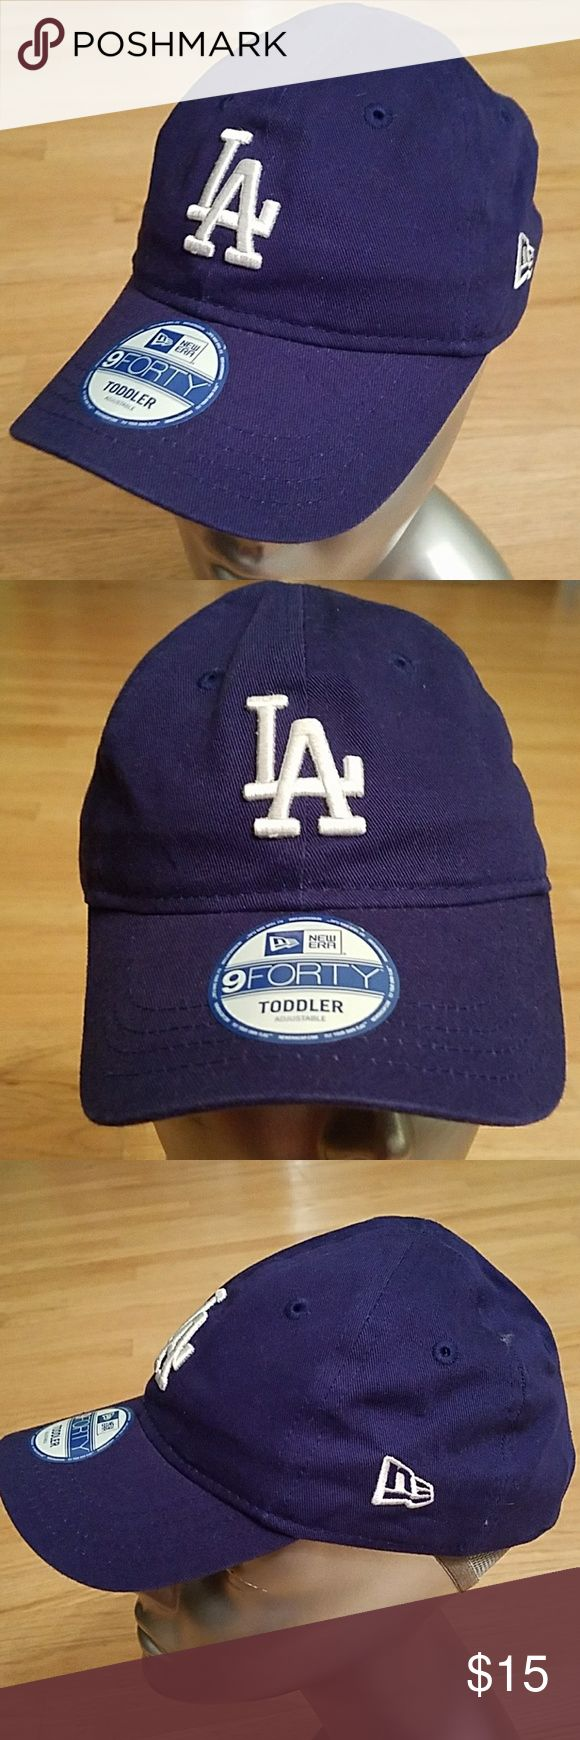 New Era LA Dodgers Toddler Stretch Fitted Cap Hat New Era LA Dodgers Toddler Stretch Fitted Cap.   Brand new with tags. Genuine MLB Merchandise New Era Accessories Hats